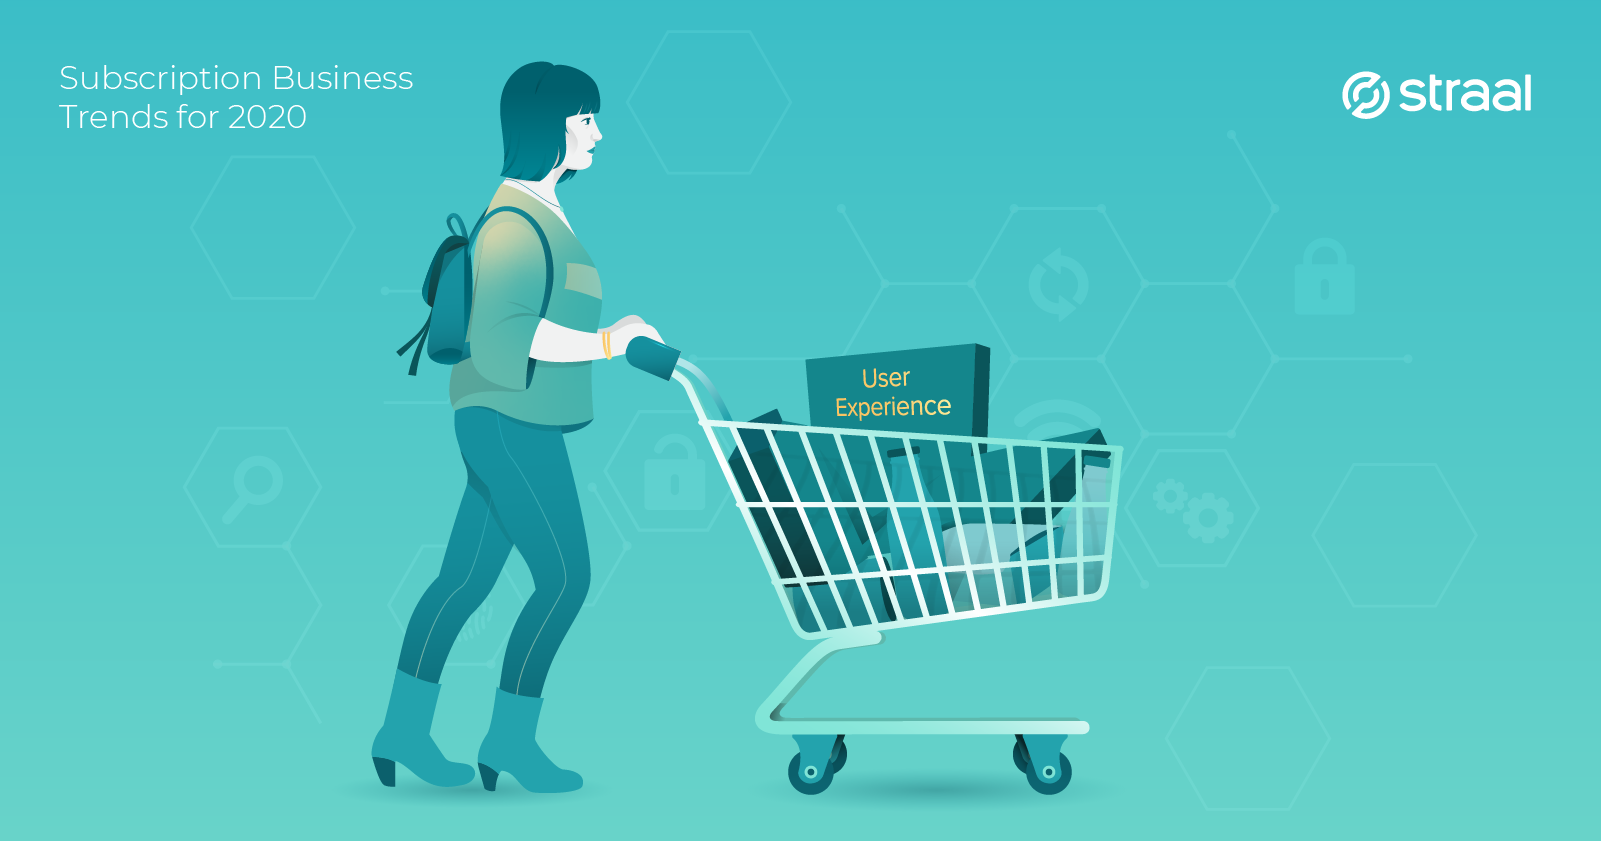 straal subscription trends 2020 ux